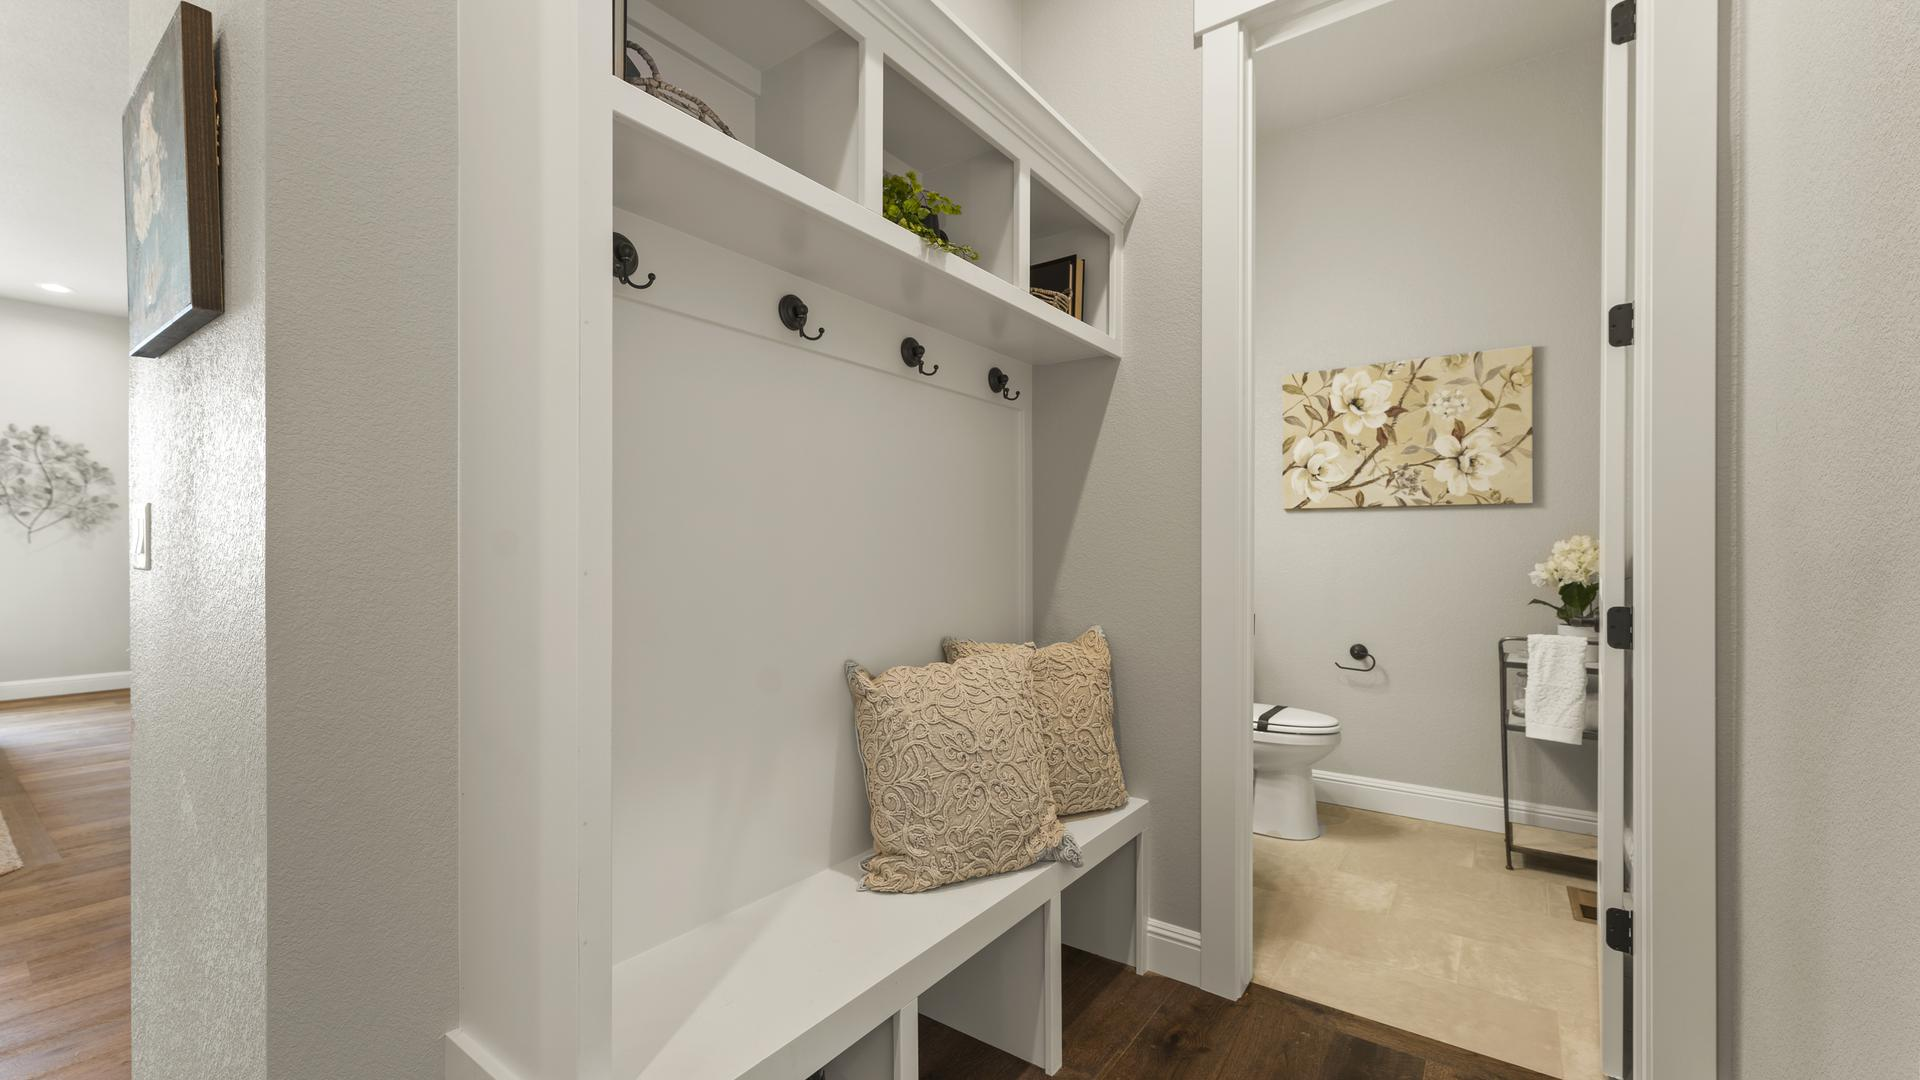 Mudroom - Not Actual Home - Finishes Will Vary